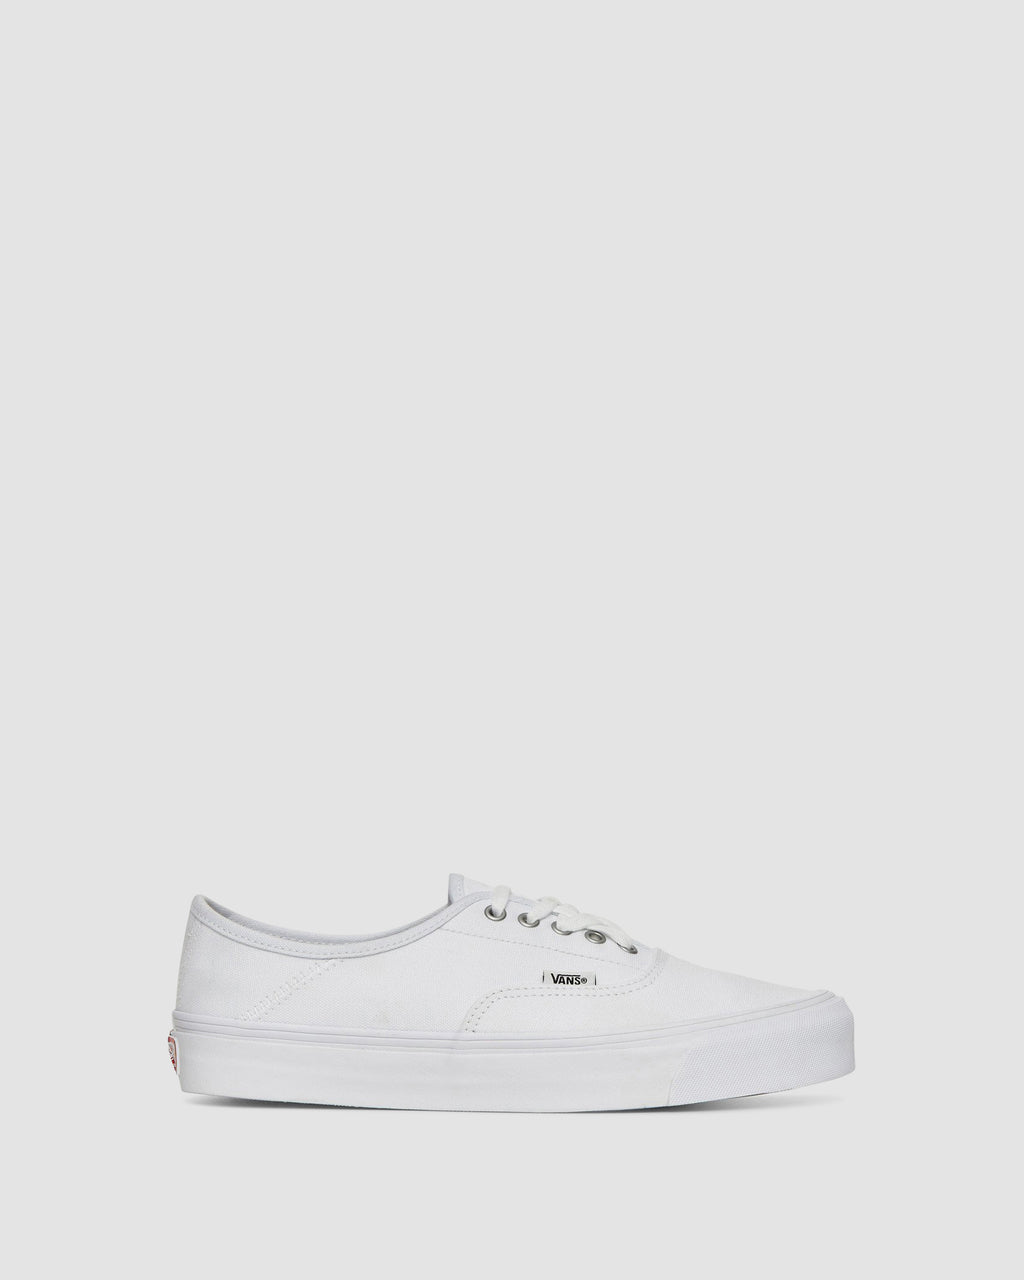 VANS OG STYLE 43 AUTHENTIC FOLD DOWN TRUE WHITE